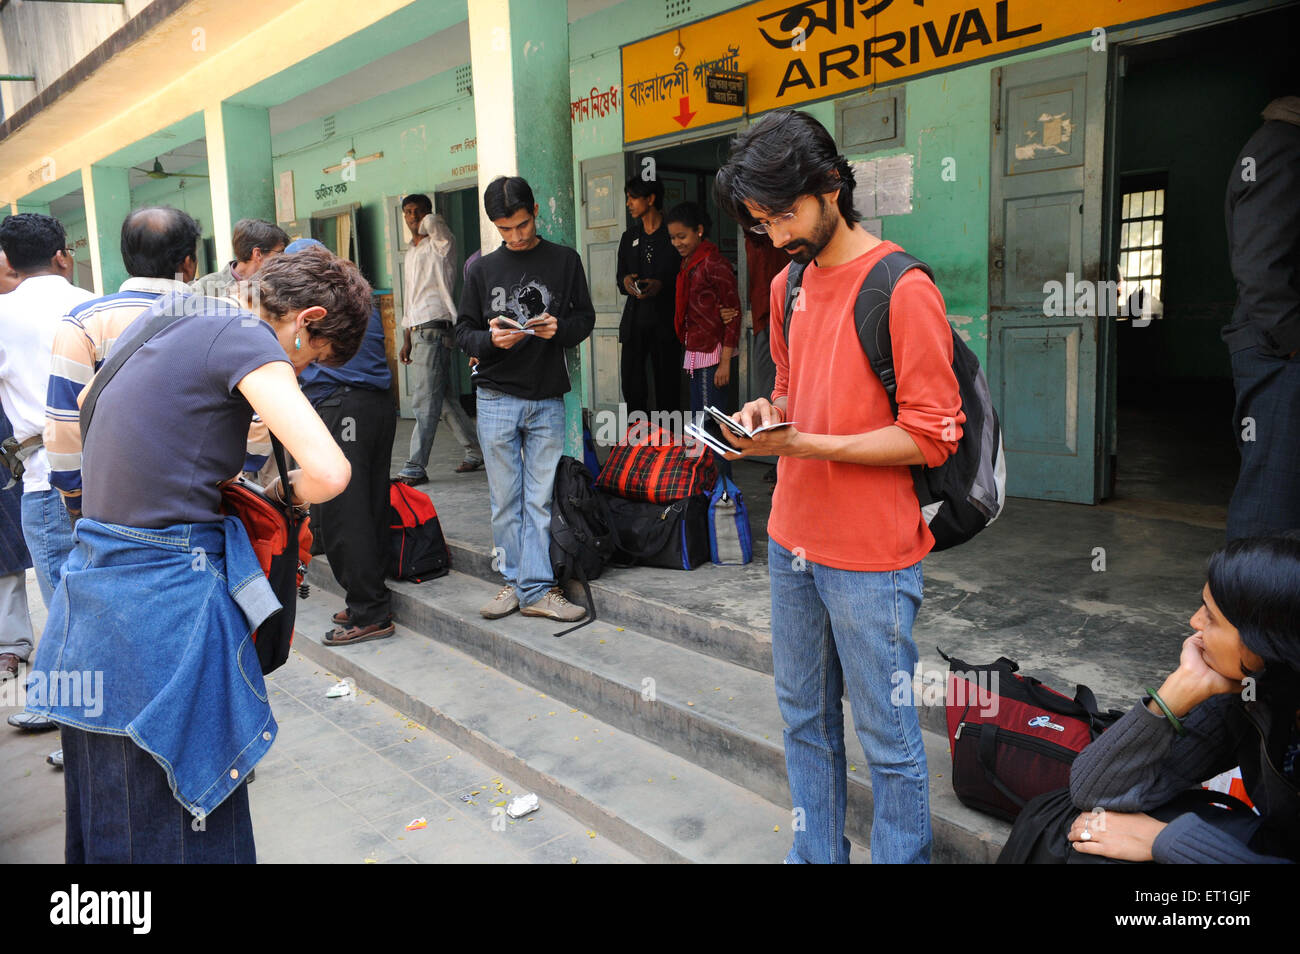 Tourist checking passports at immigration counter at  ; Bangladesh NO MR - Stock Image